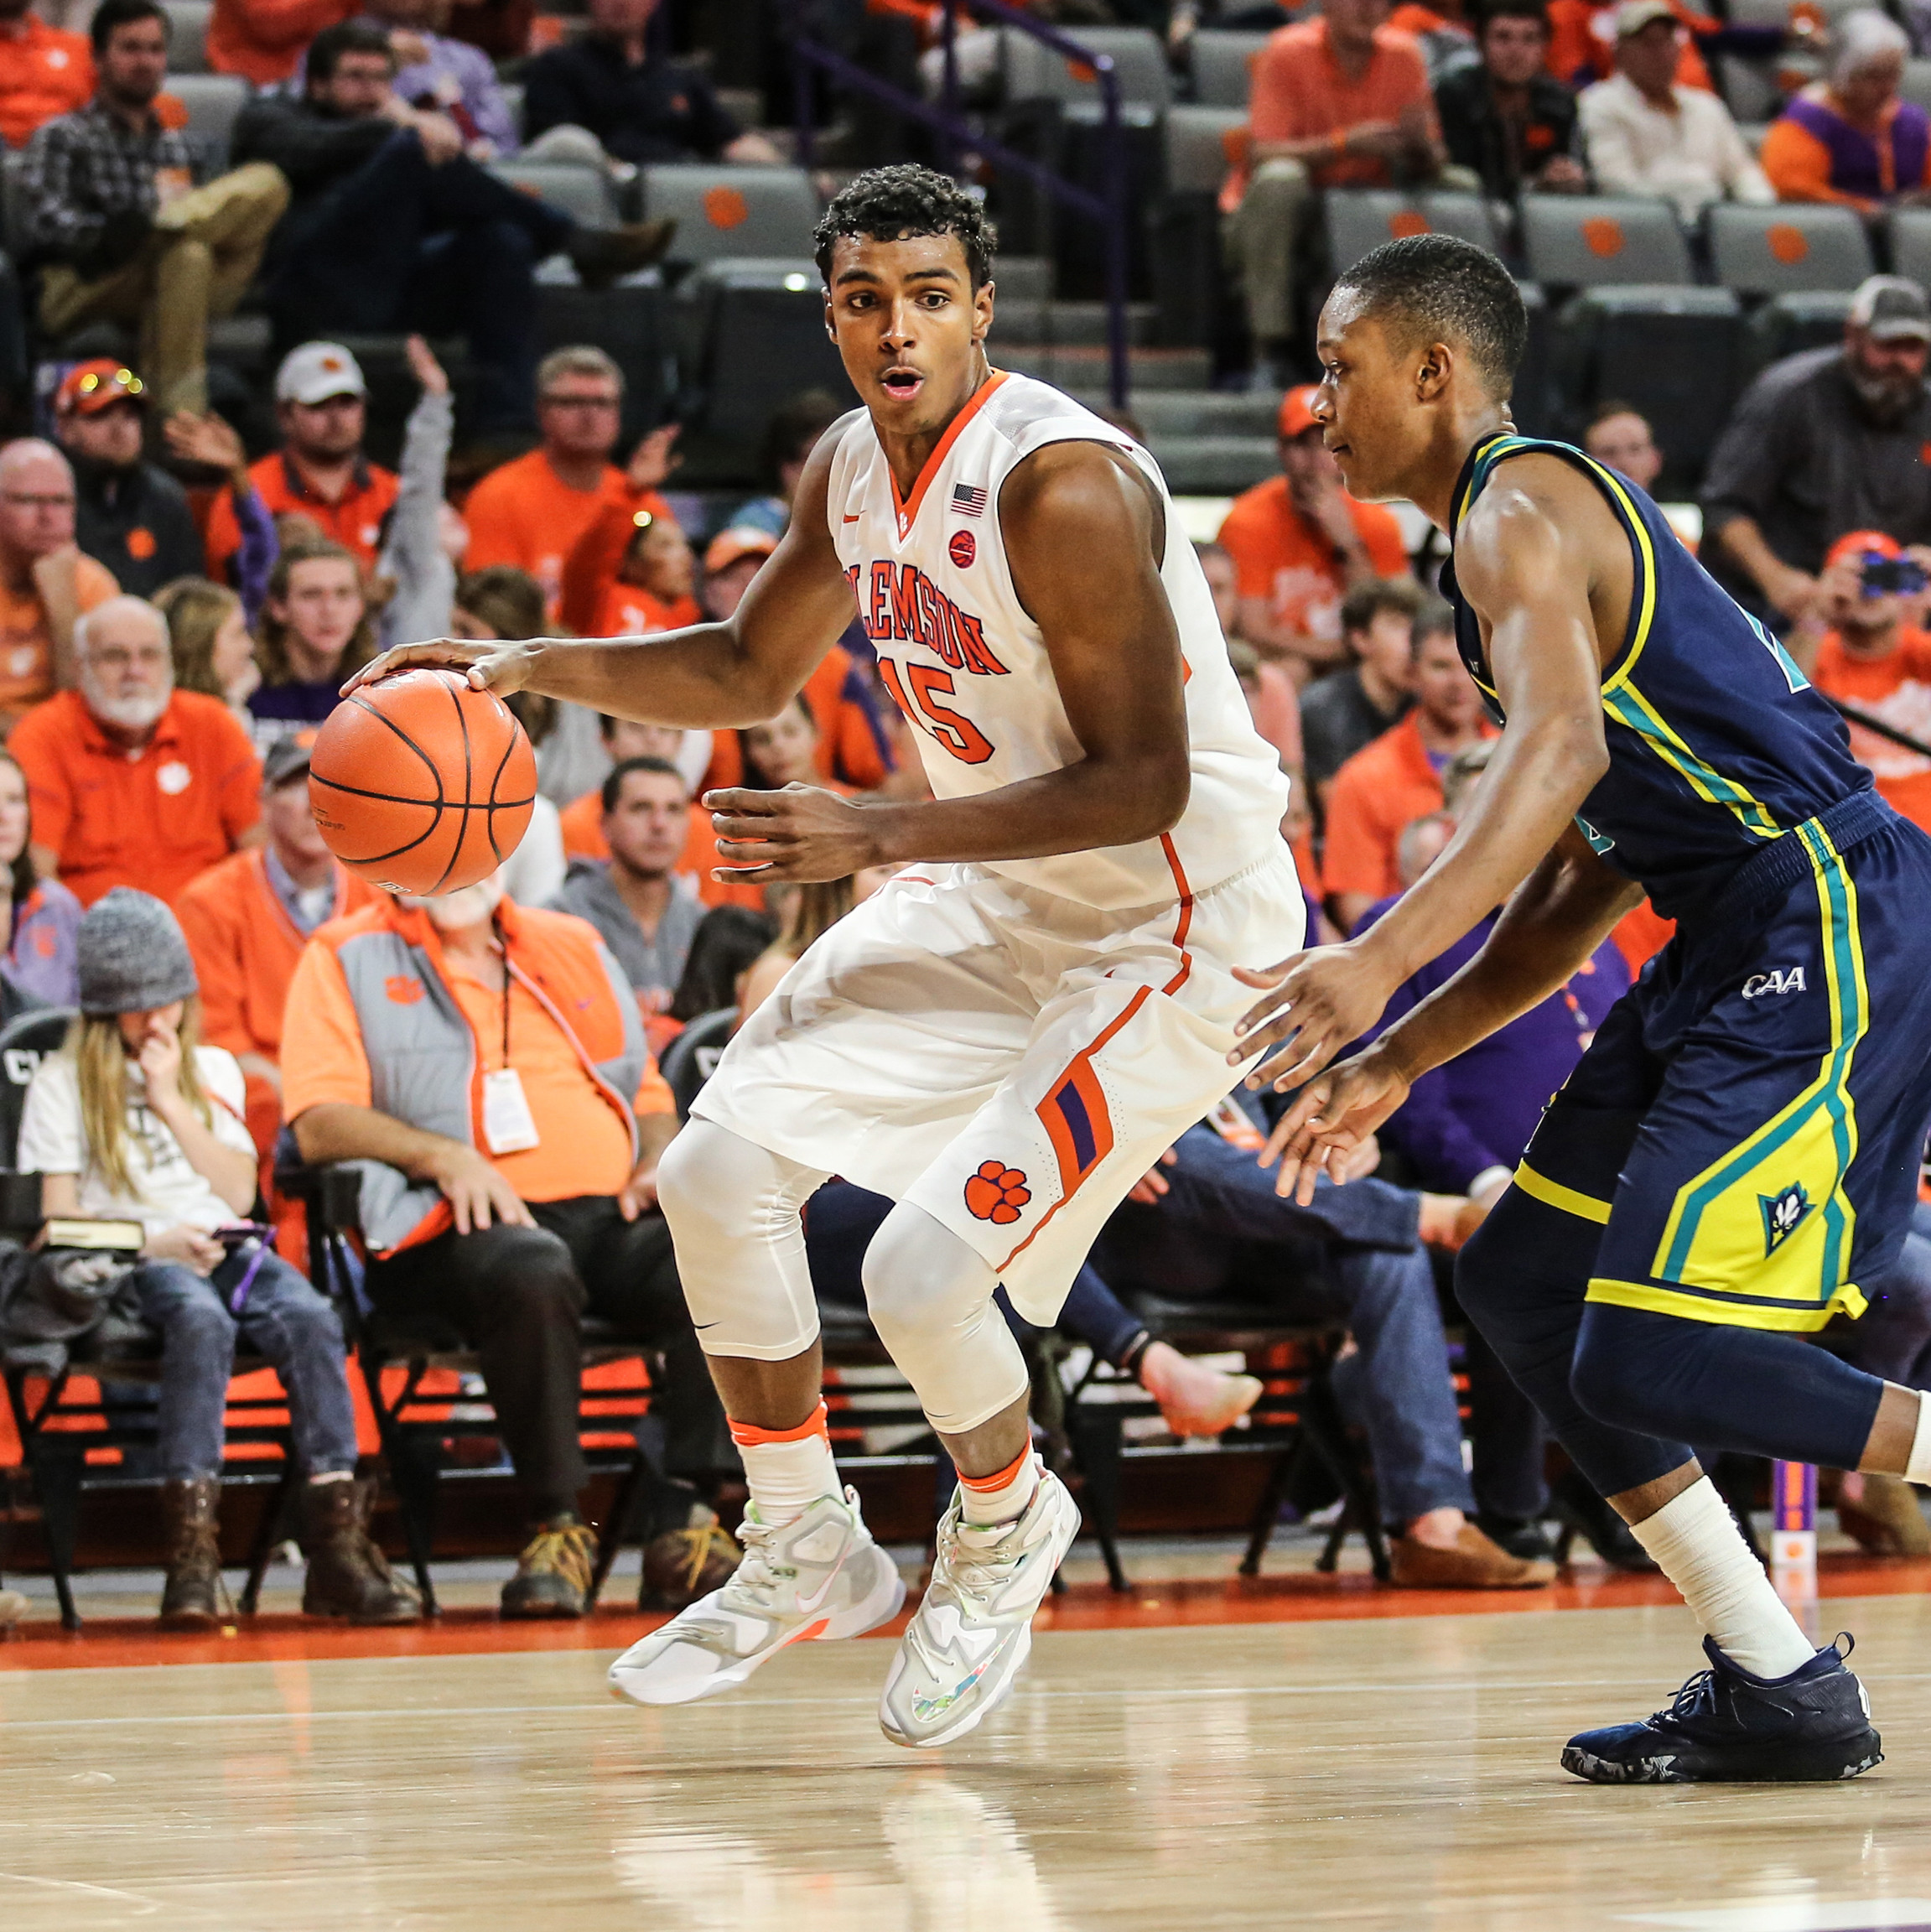 Grantham's 25 Points Pace Clemson to Win in Spain